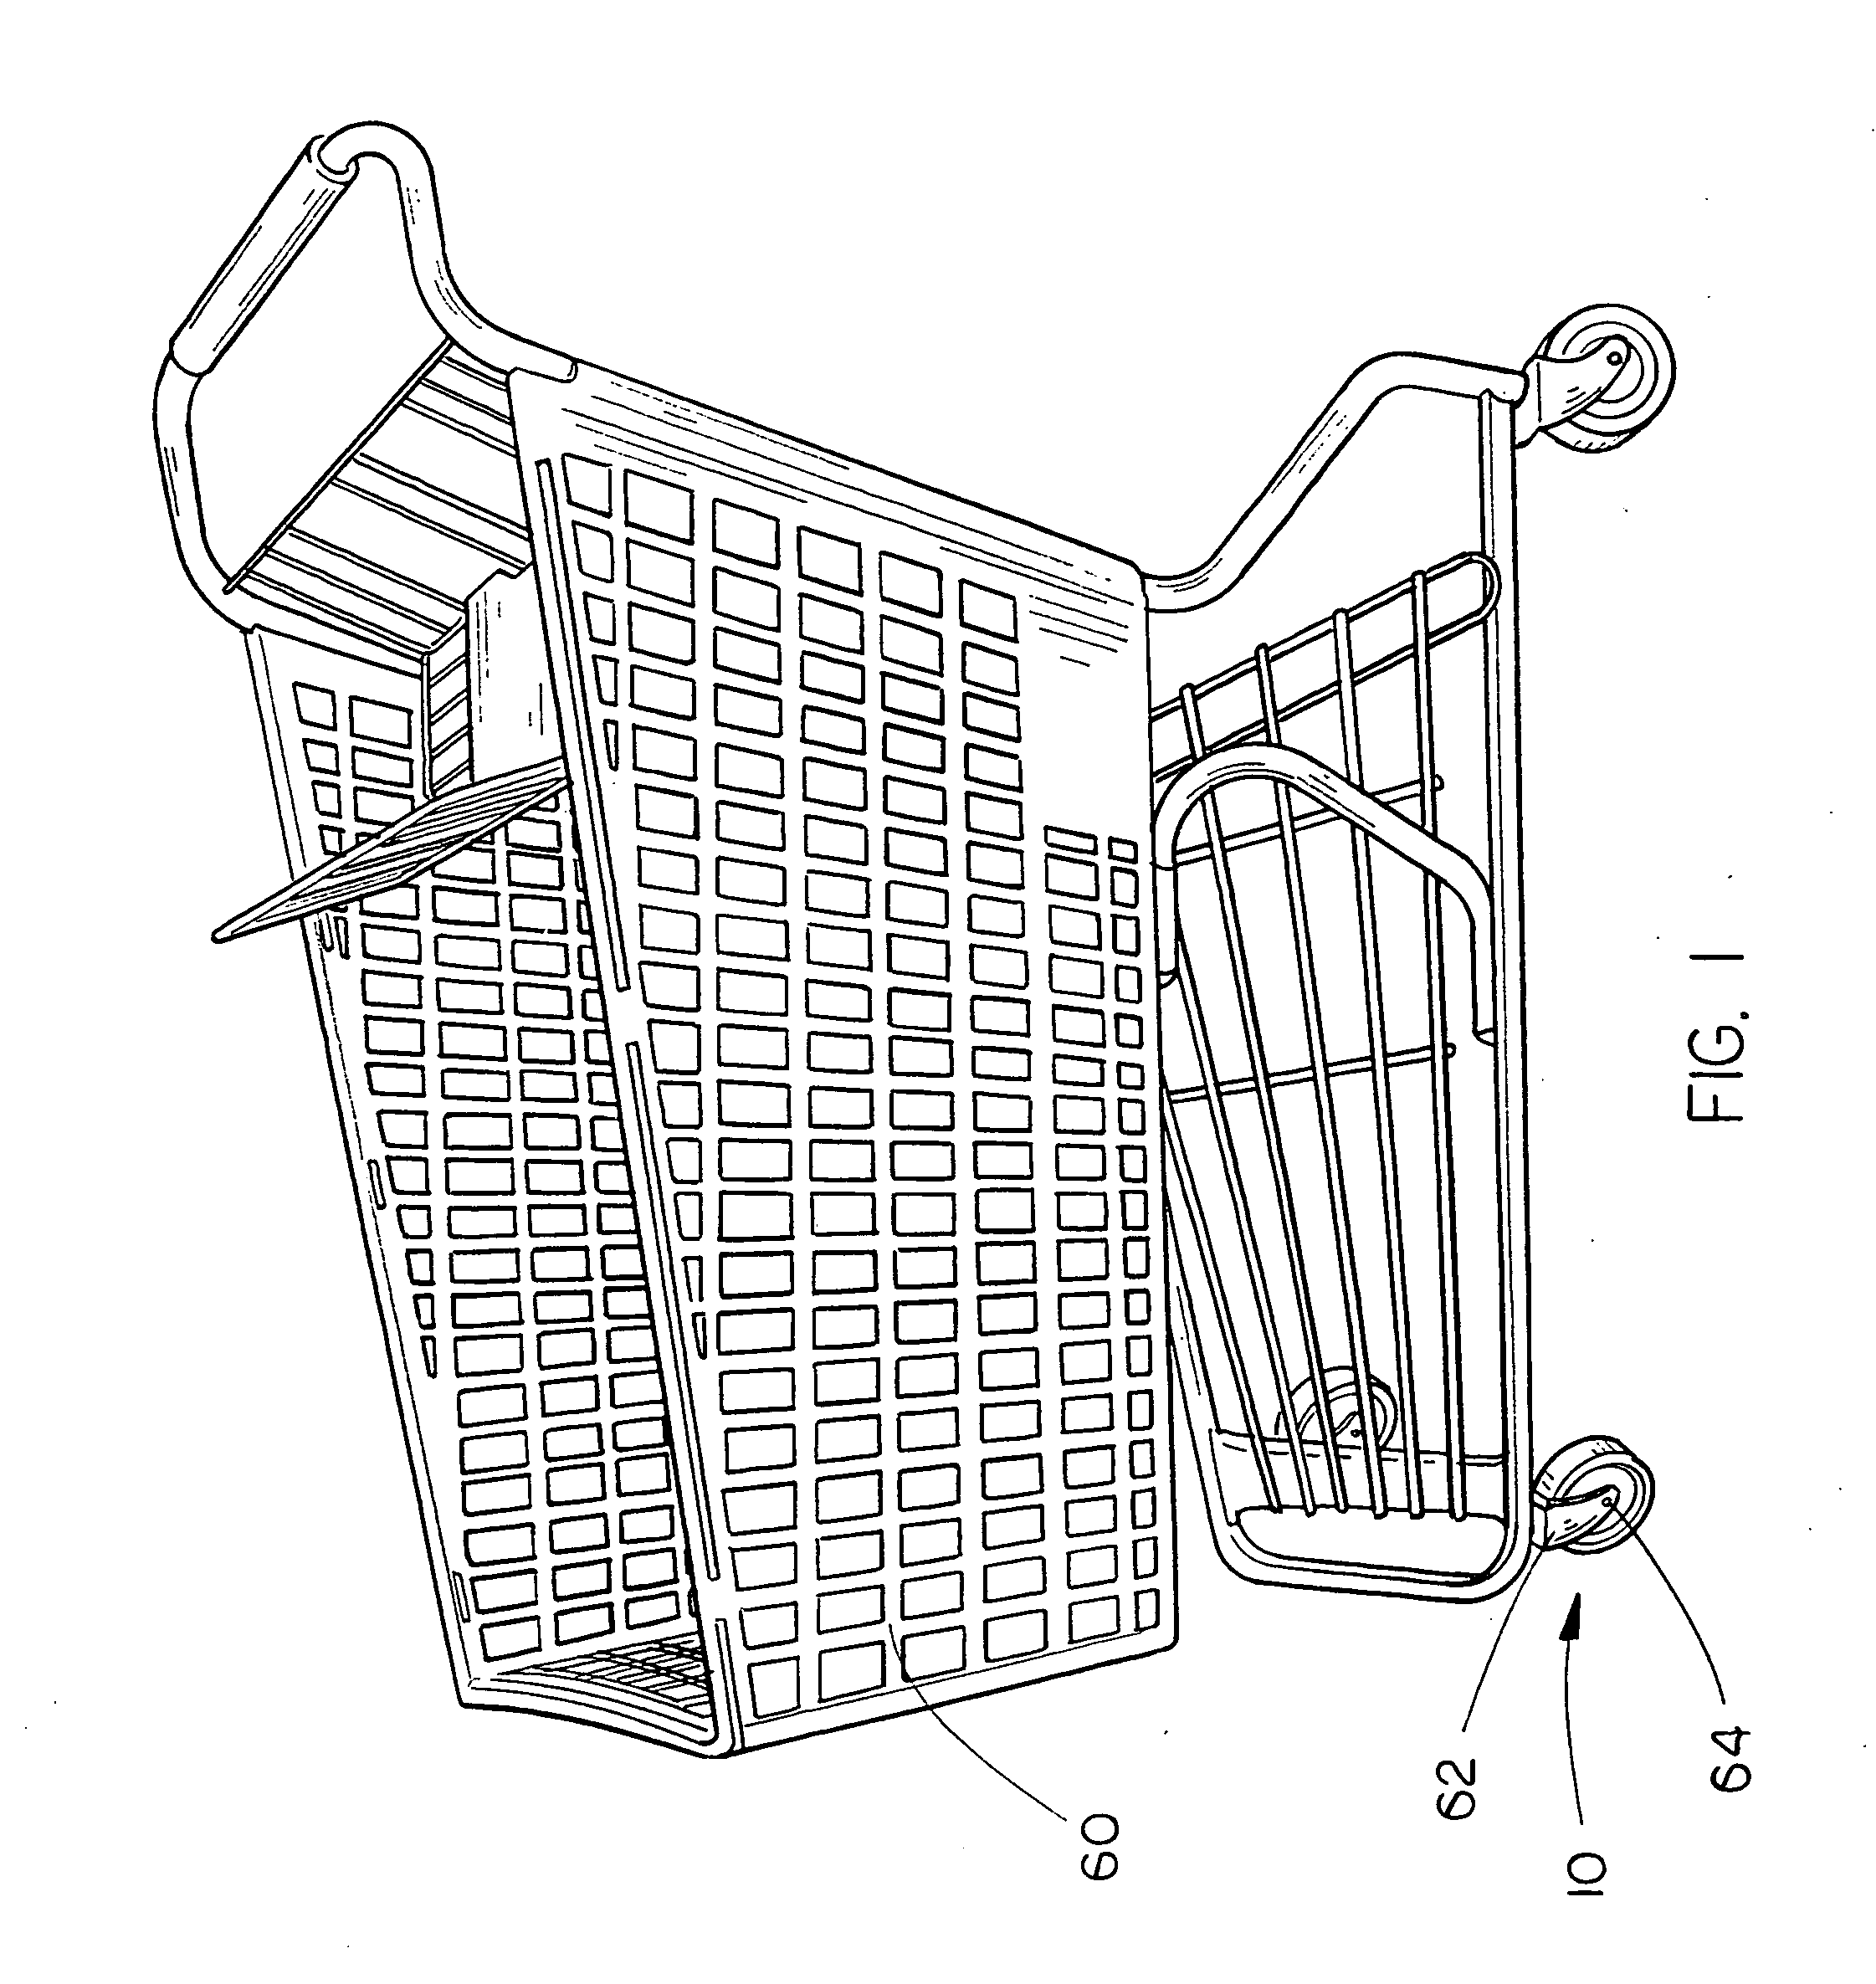 It's just a photo of Unusual Shopping Cart Drawing